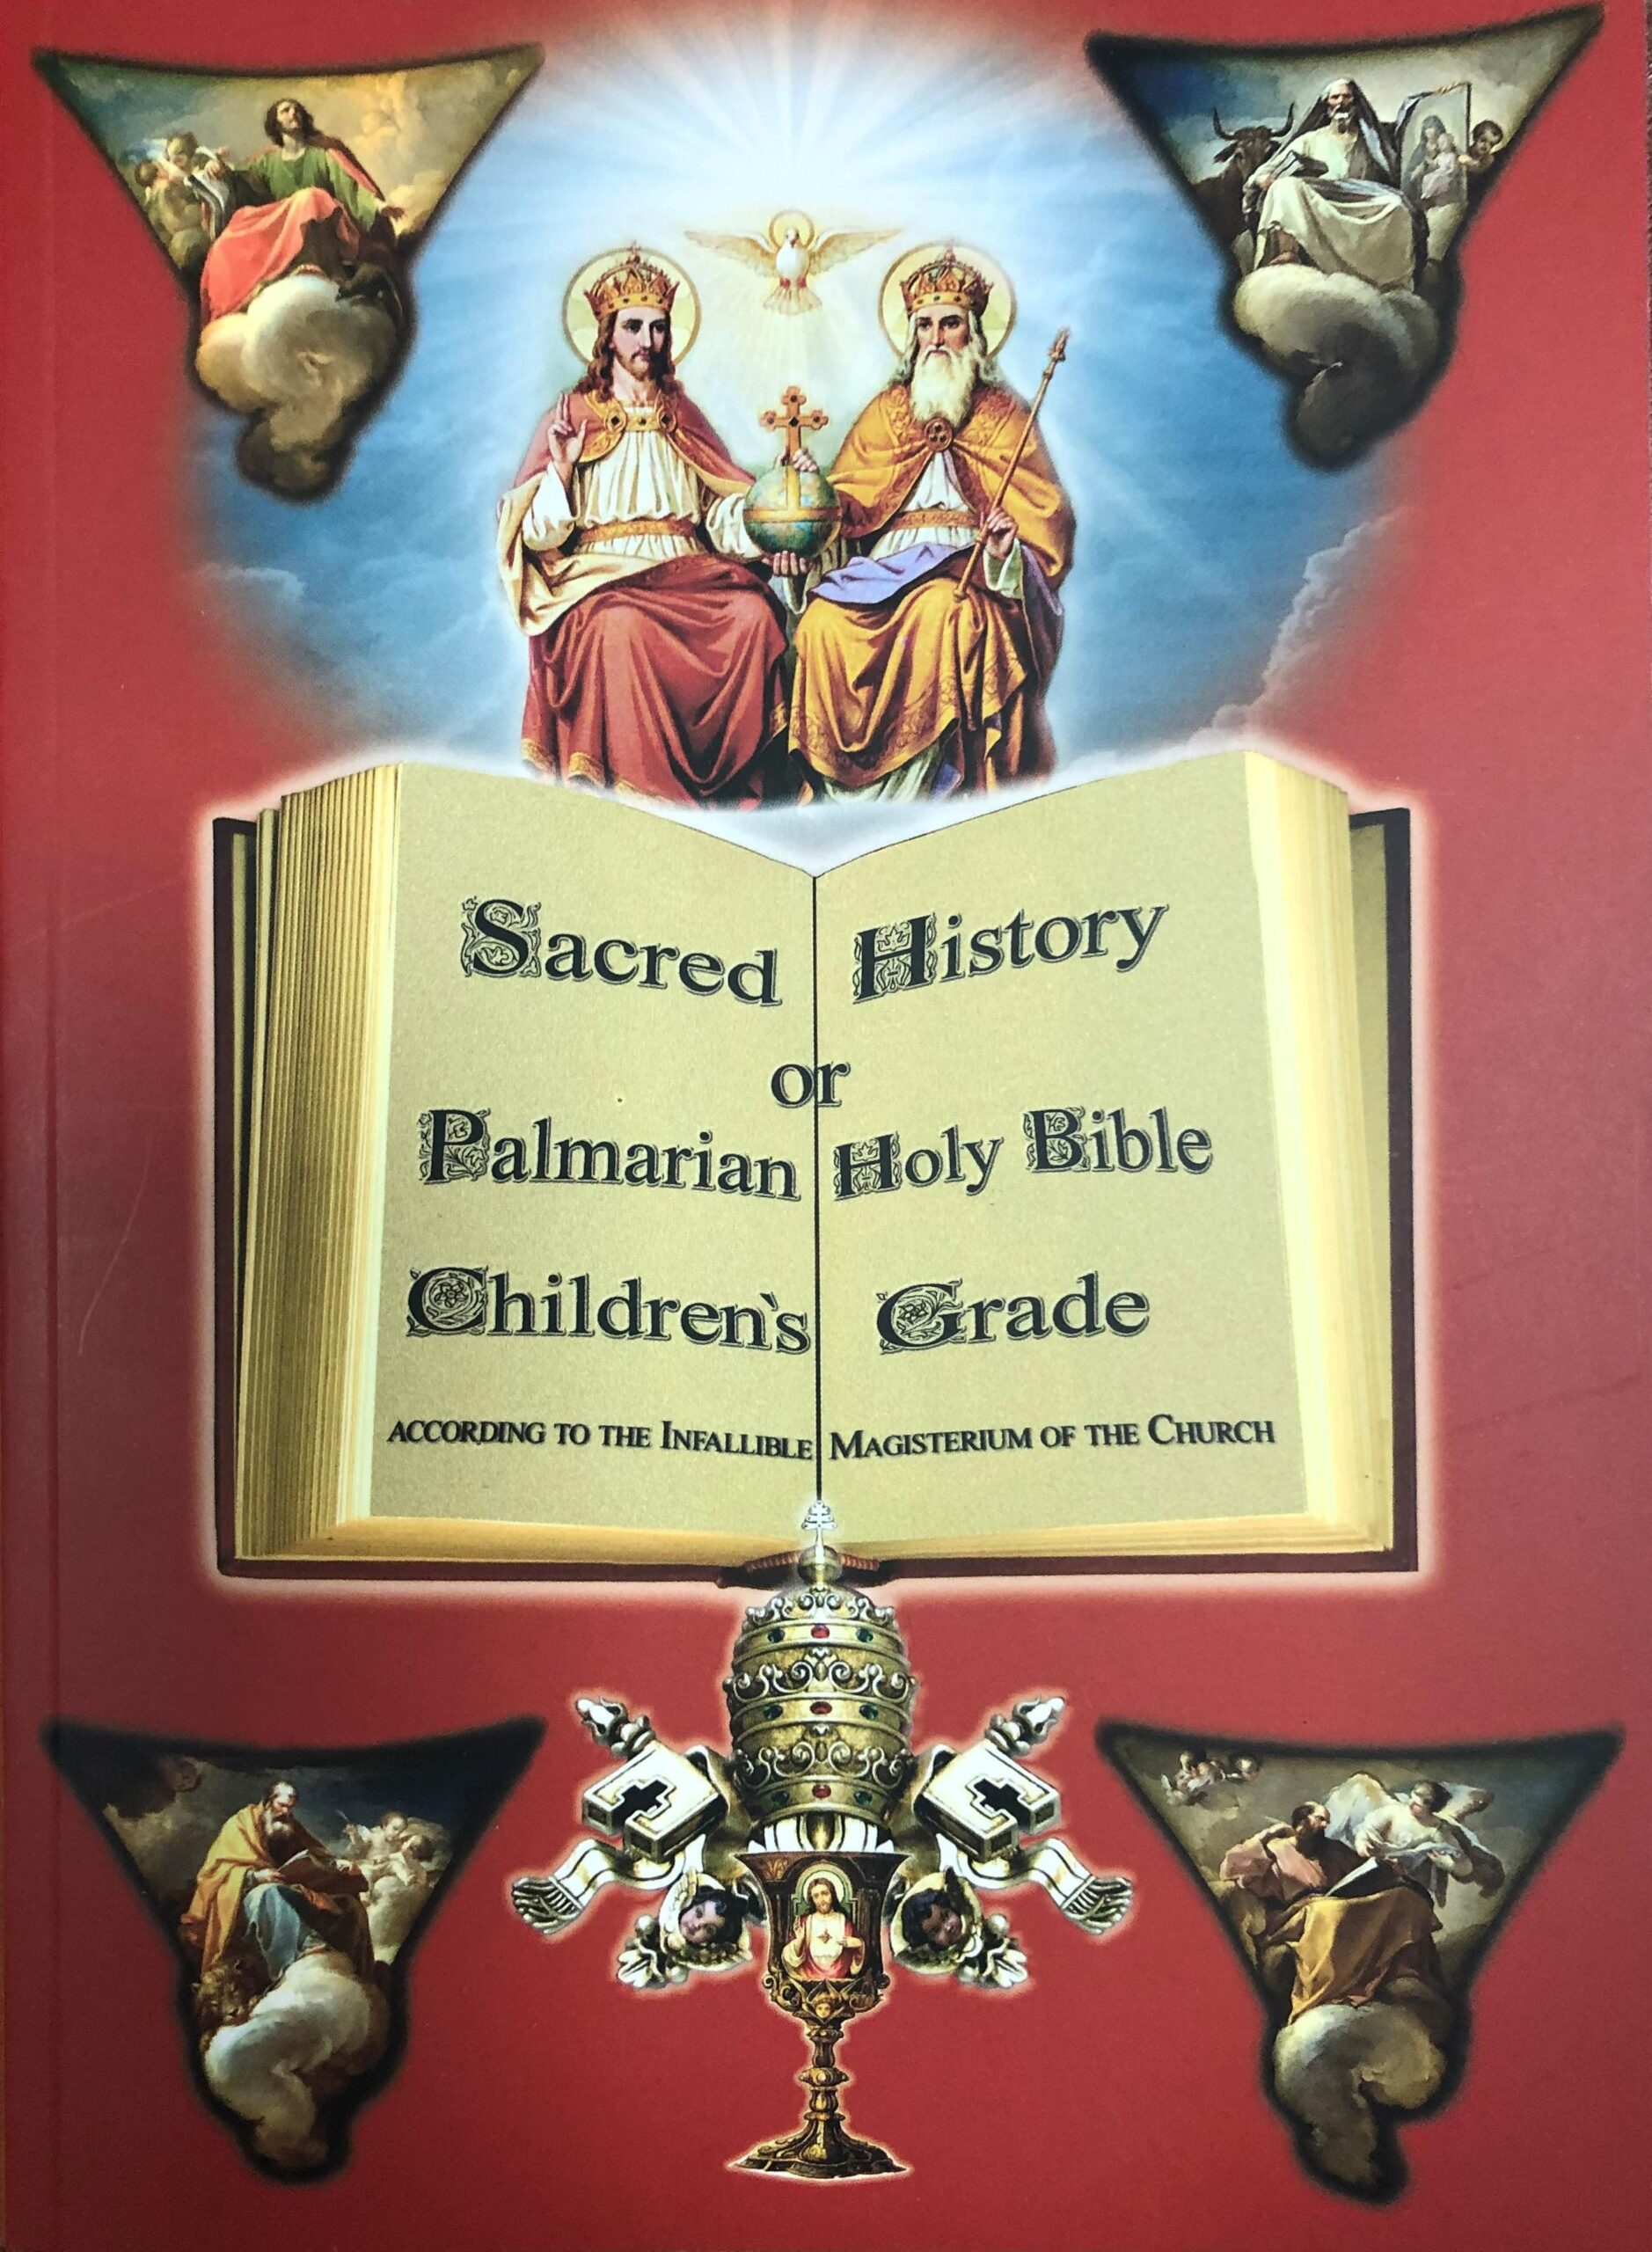 Sacred History or Palmarian Holy Bible Children's Grade<br><br>See more